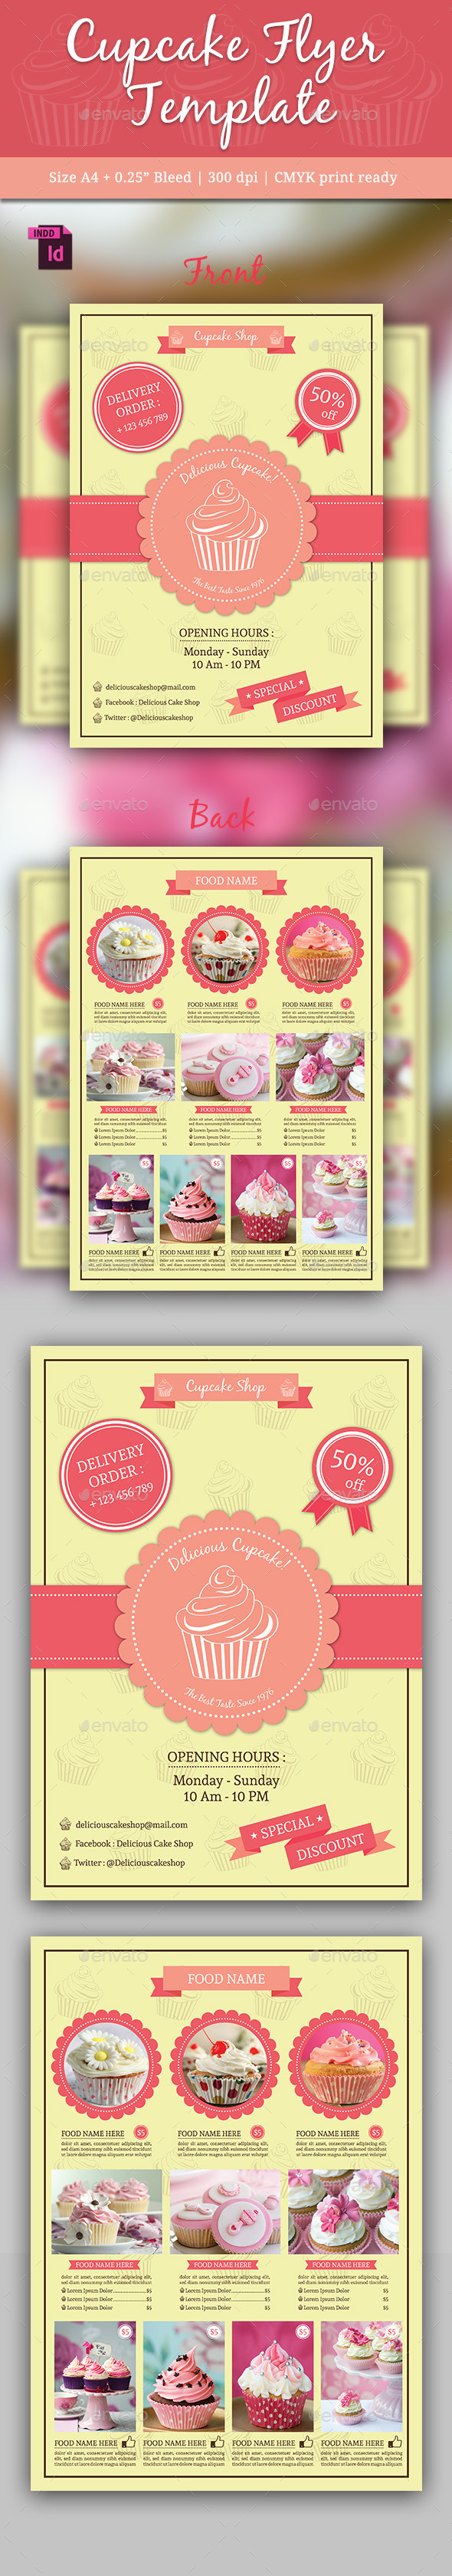 Cupcake Flyer Template Vol. 2